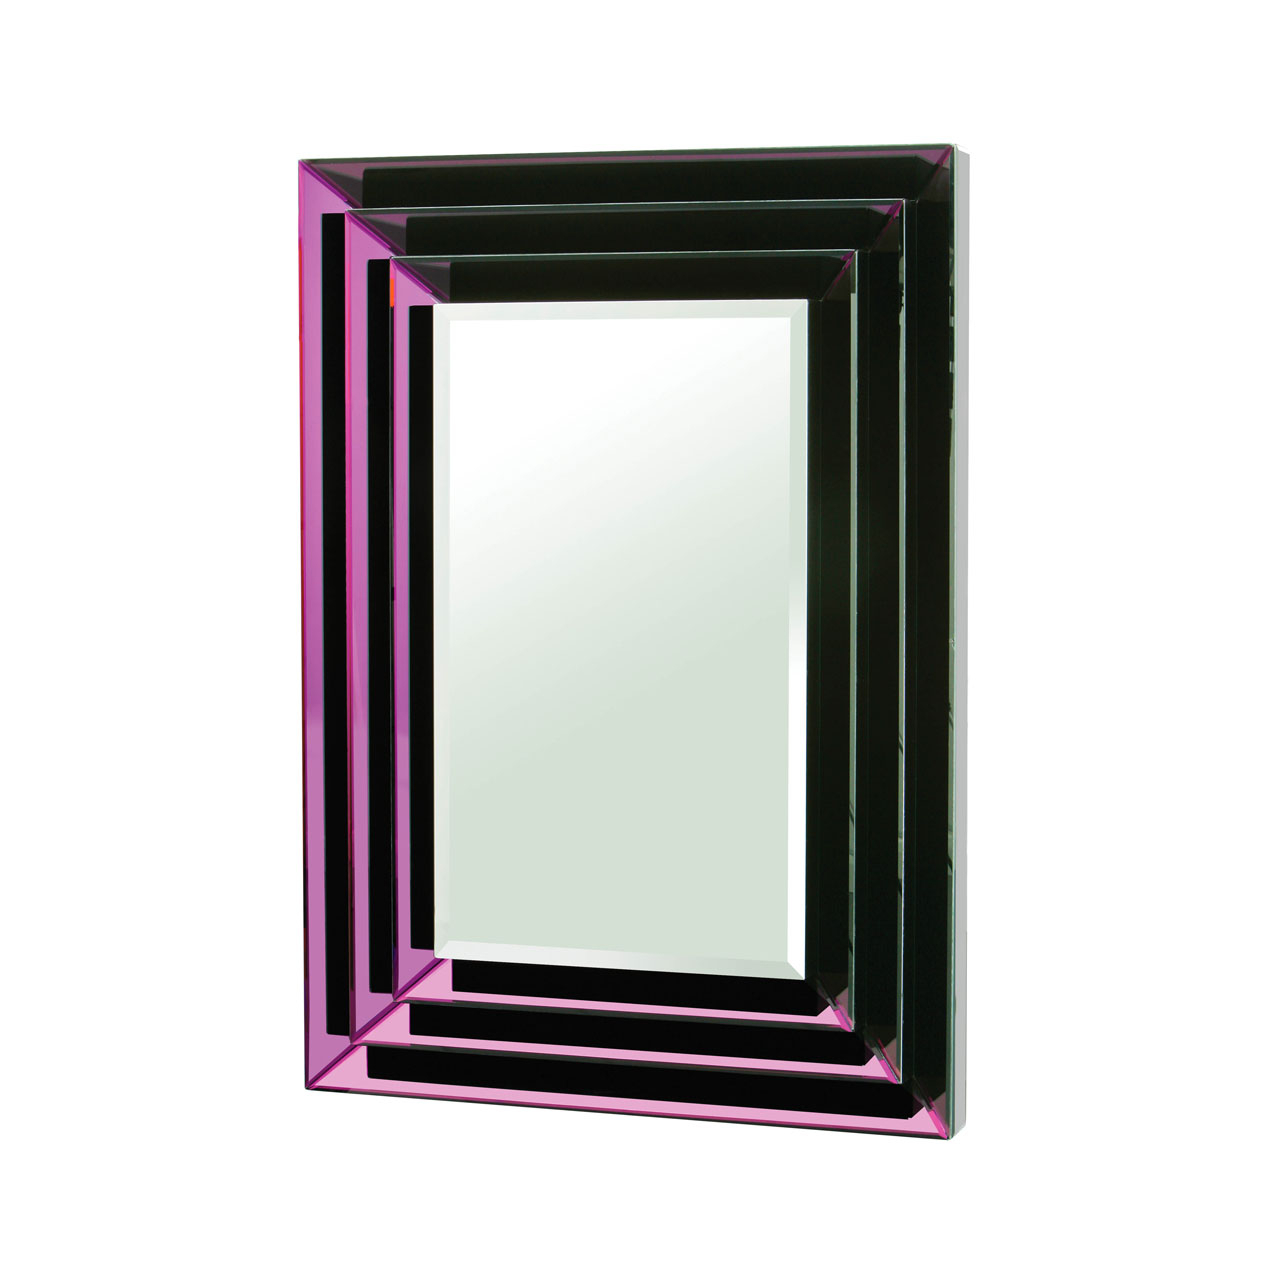 Details About Wall Mirror Purple Mirrored Frame Rectangular Home Décor With Regard To Most Recent Purple Wall Mirrors (View 4 of 20)